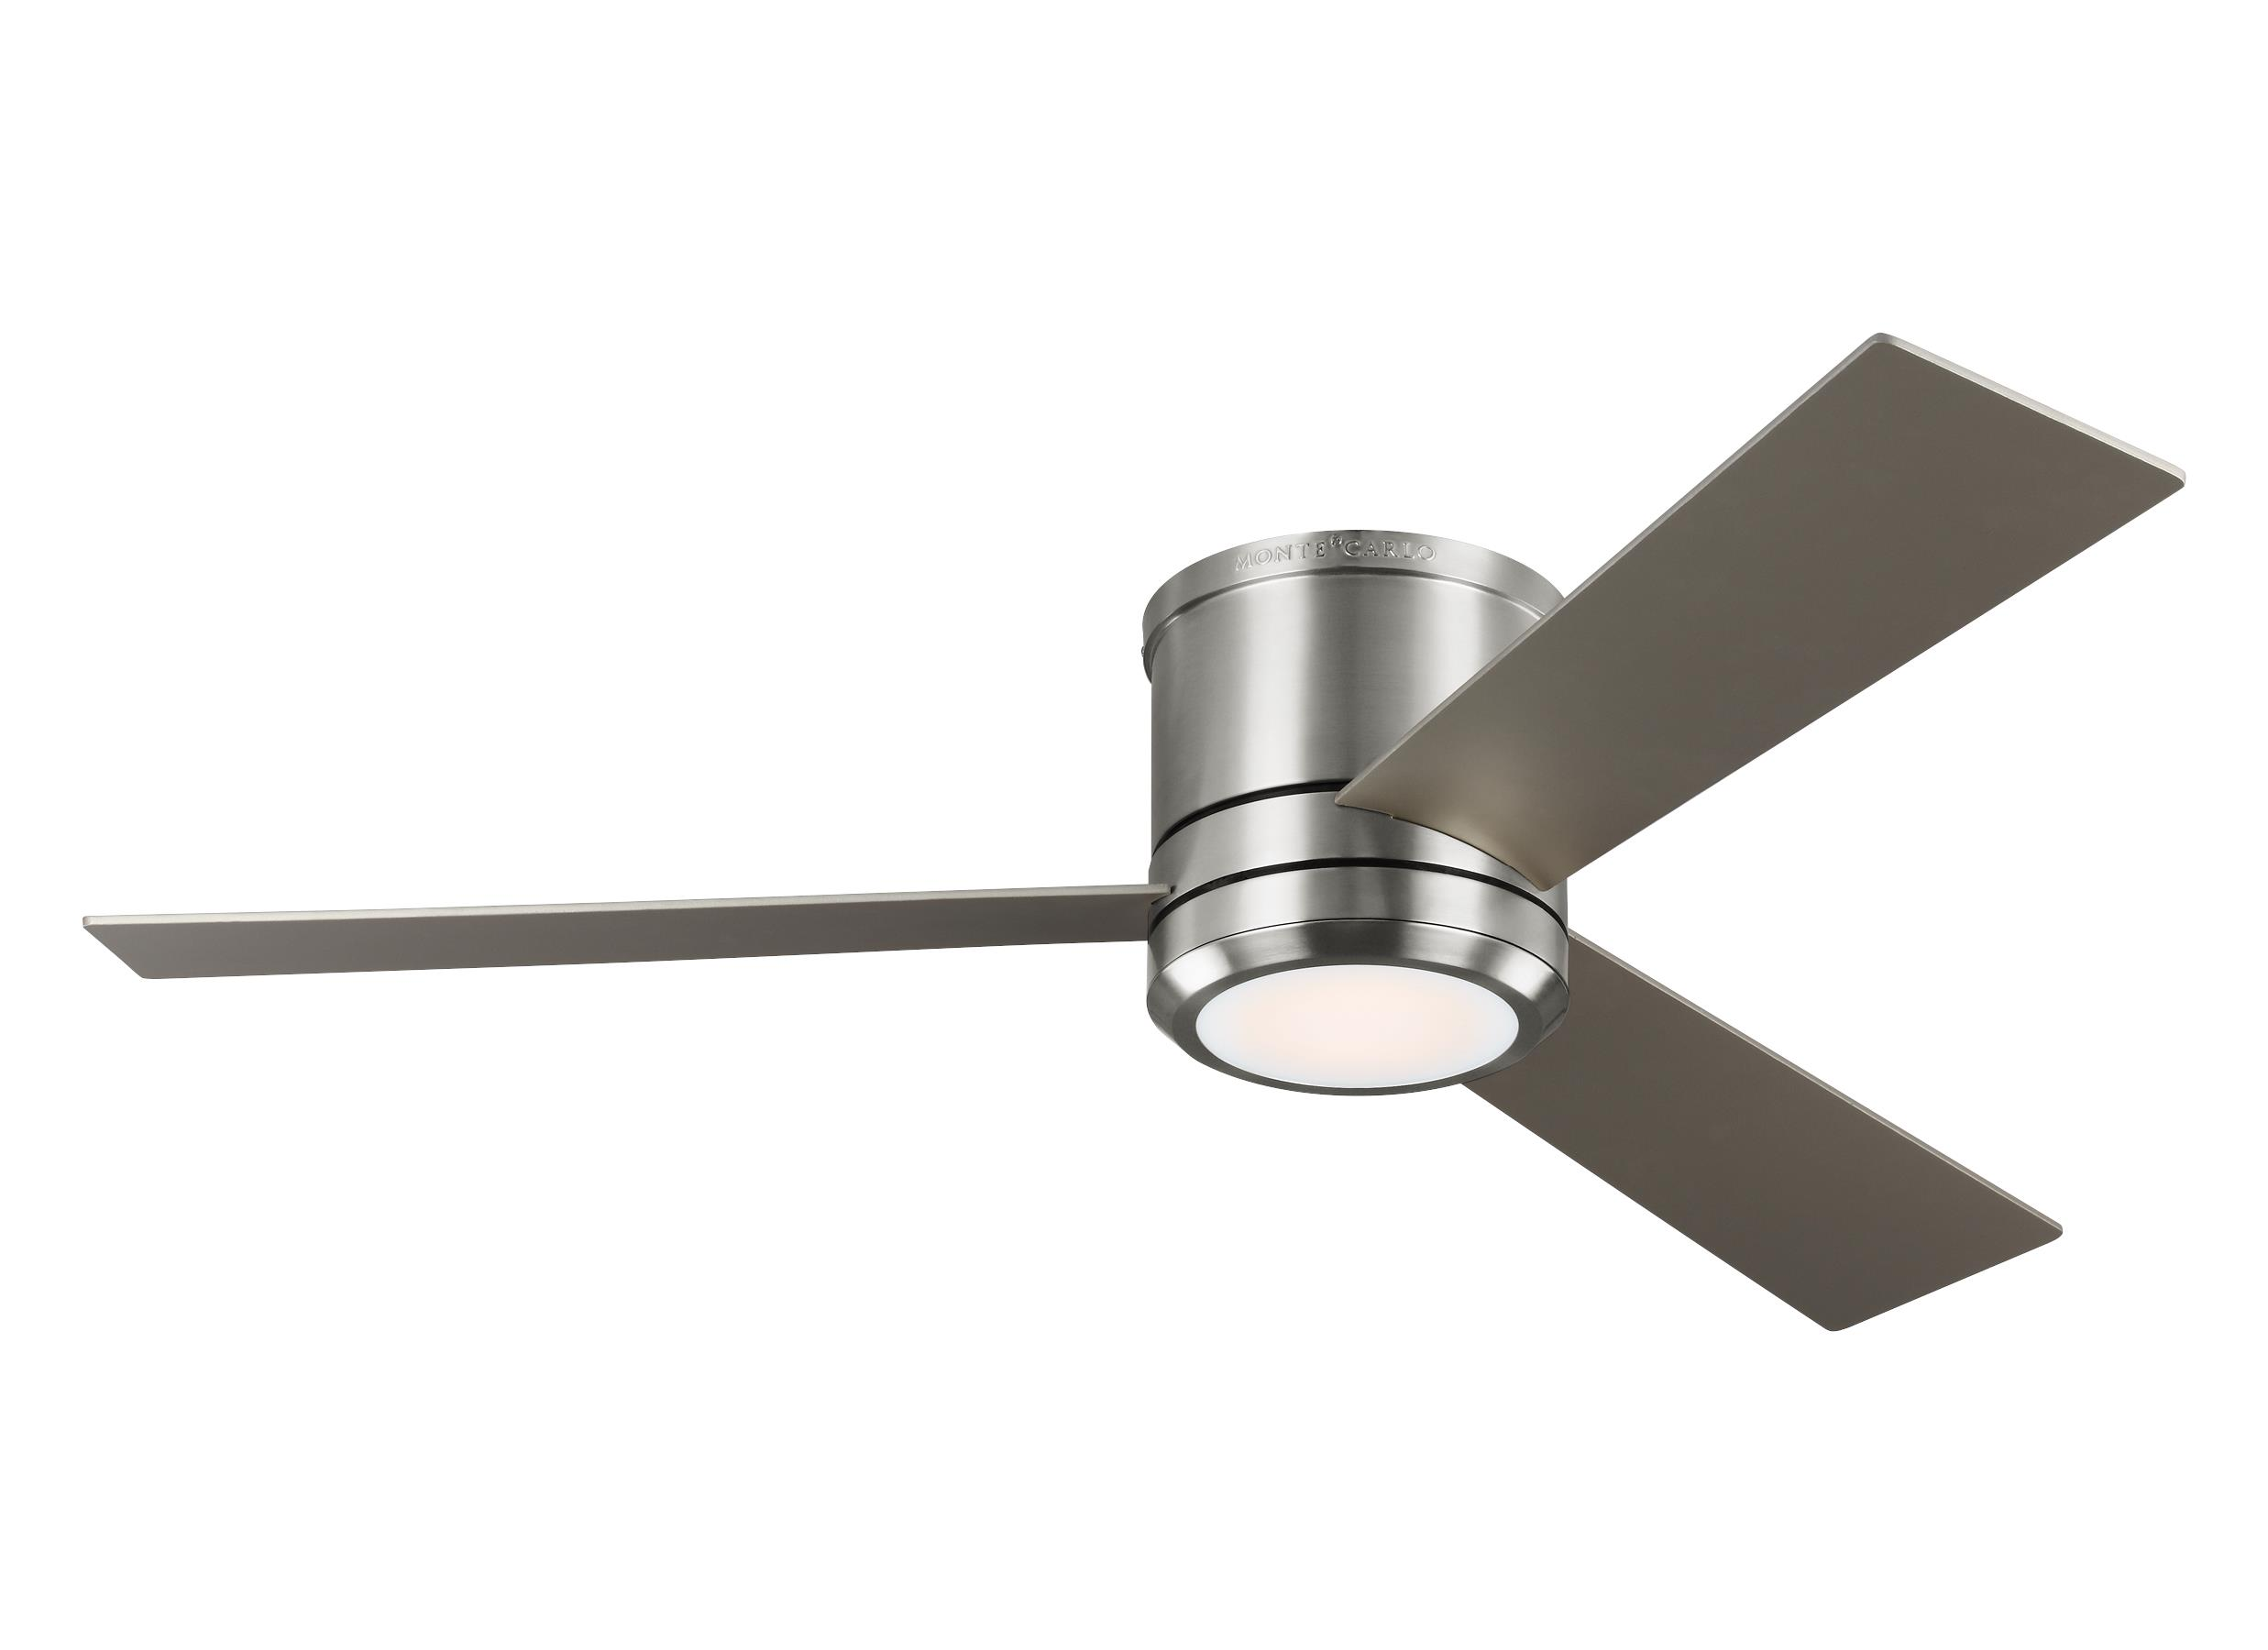 max ceiling fan with lightmonte carlo | 3clmr56bsd